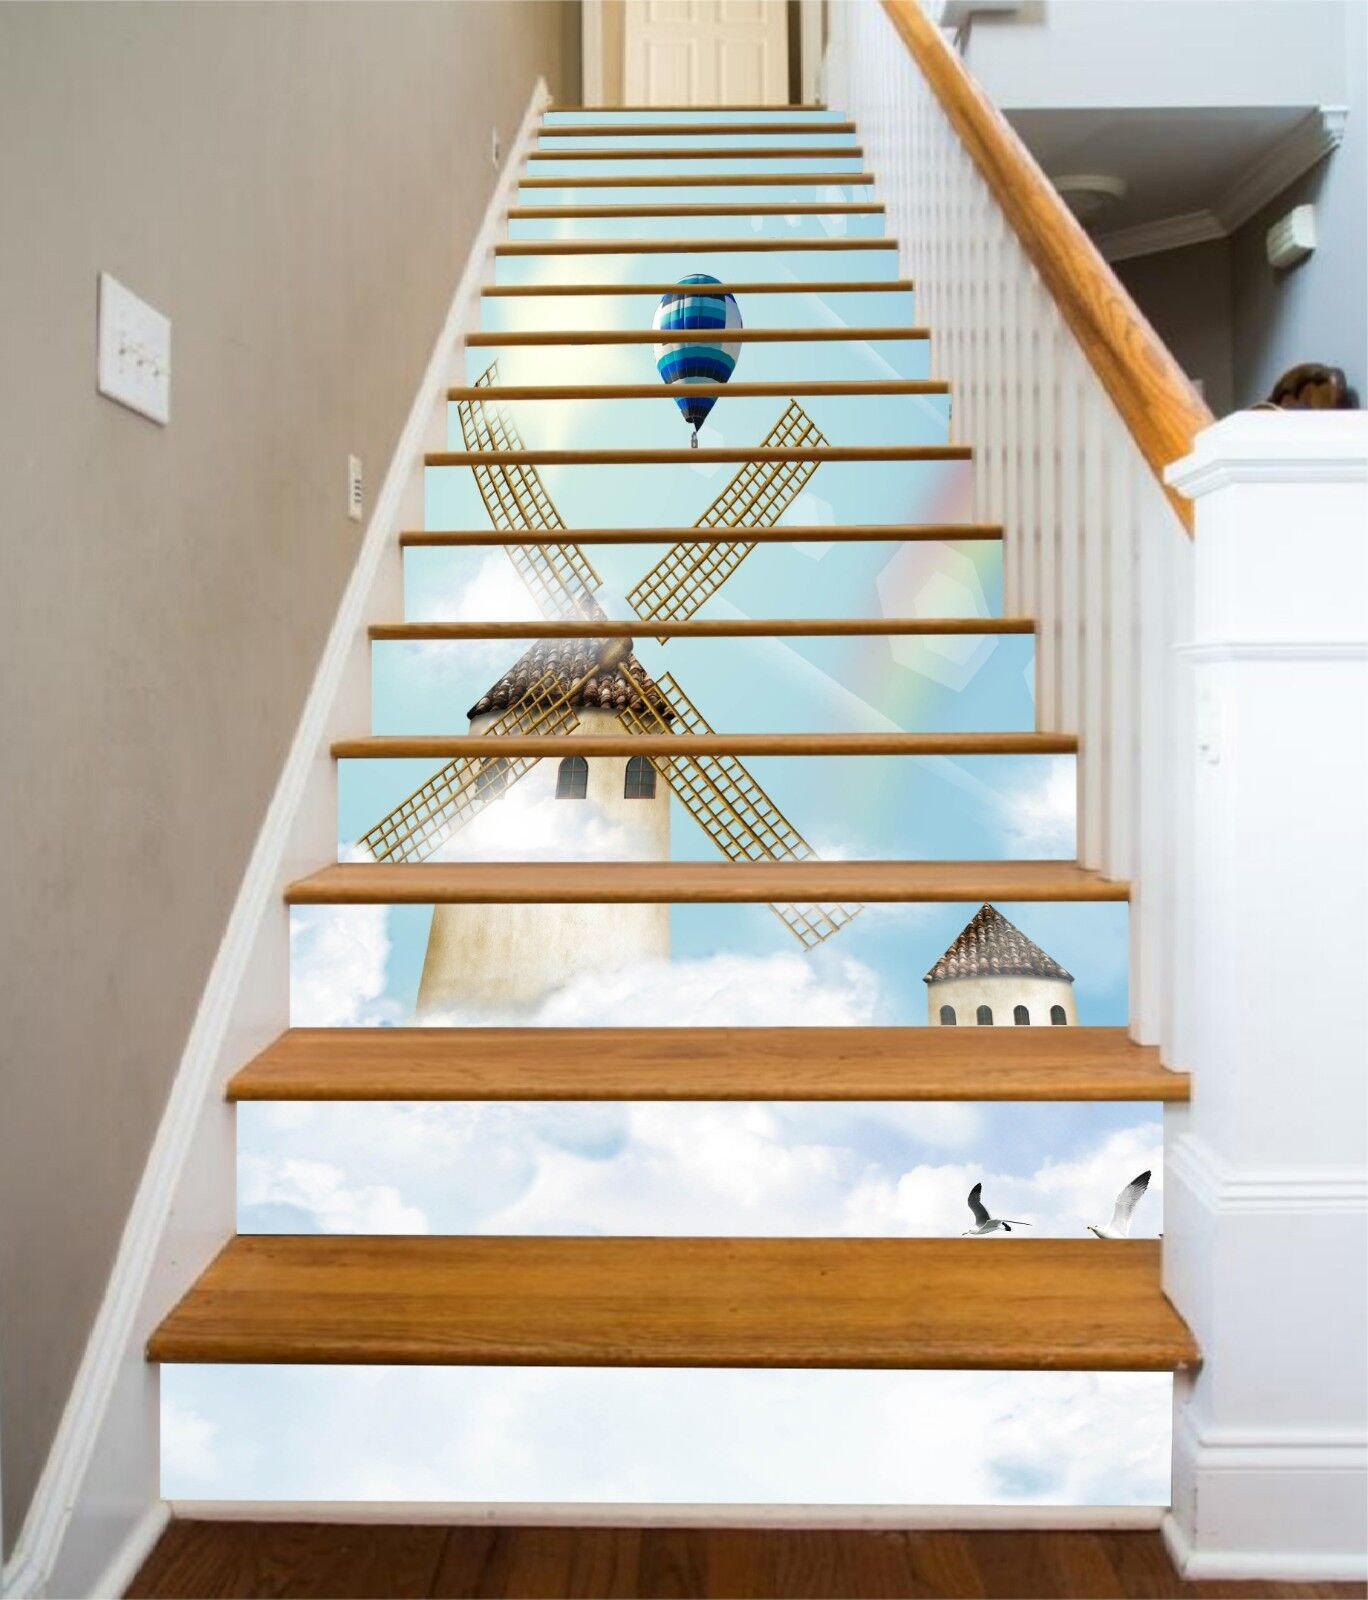 3D Windmill House Stair Risers Decoration Photo Mural Vinyl Decal Wallpaper UK